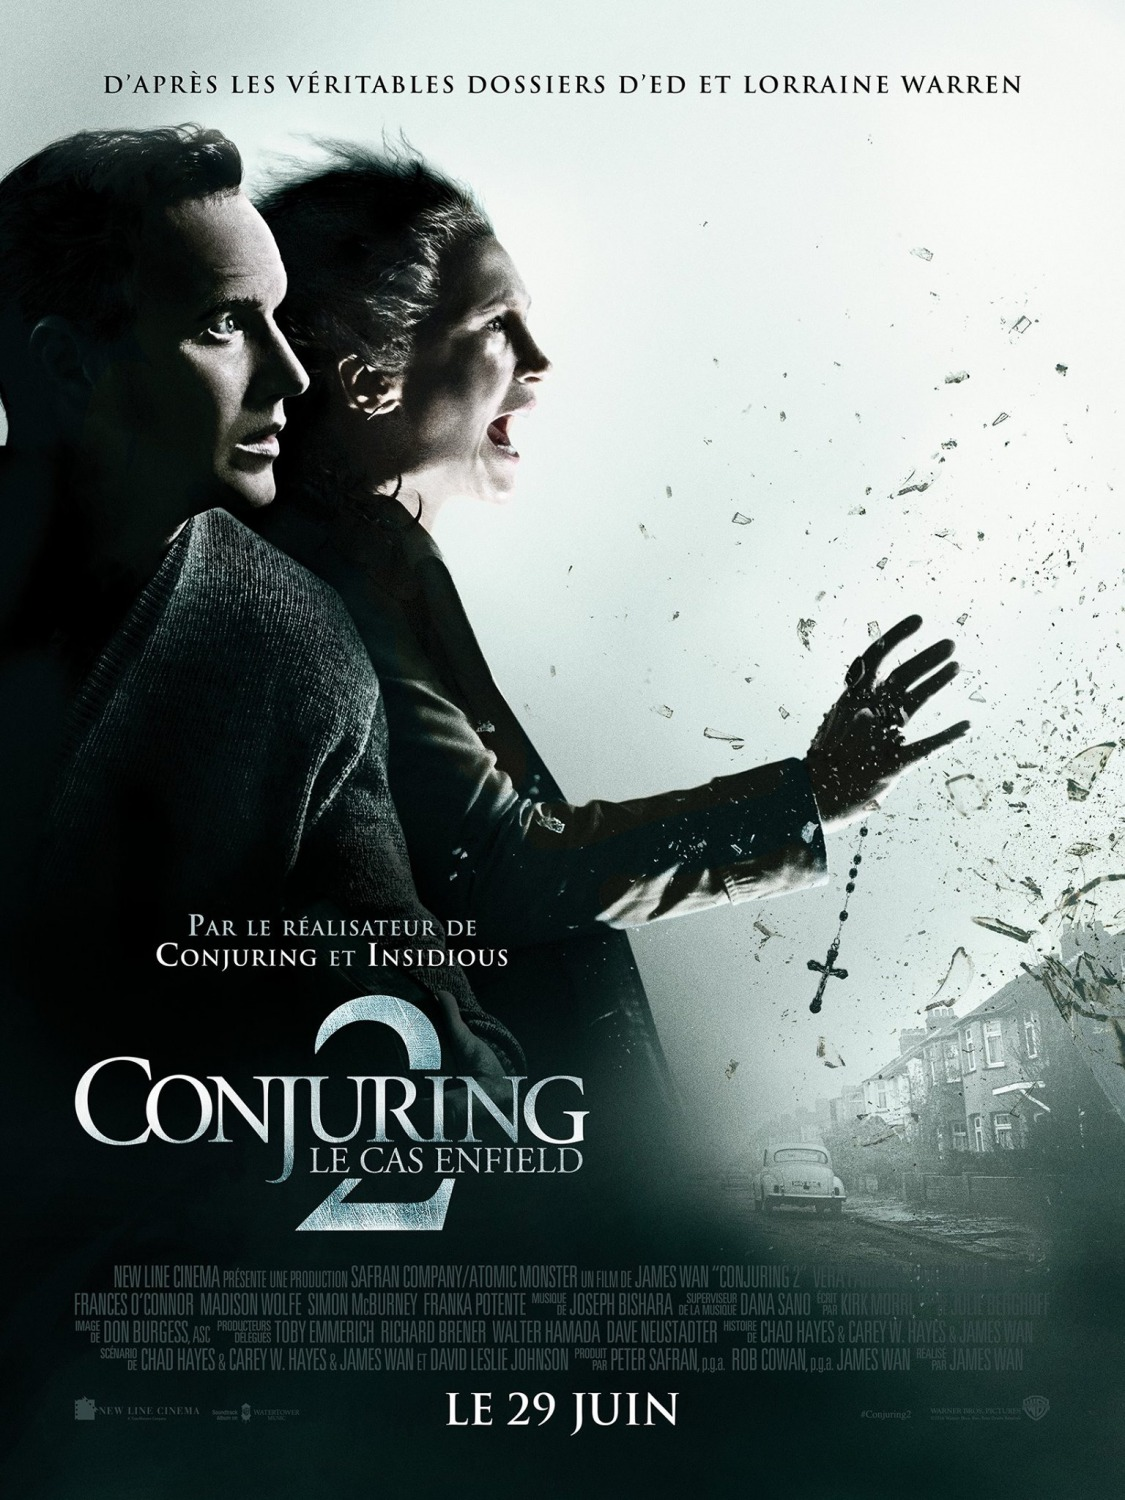 The Conjuring 2 Movie French Poster And Audio Recordings Teaser